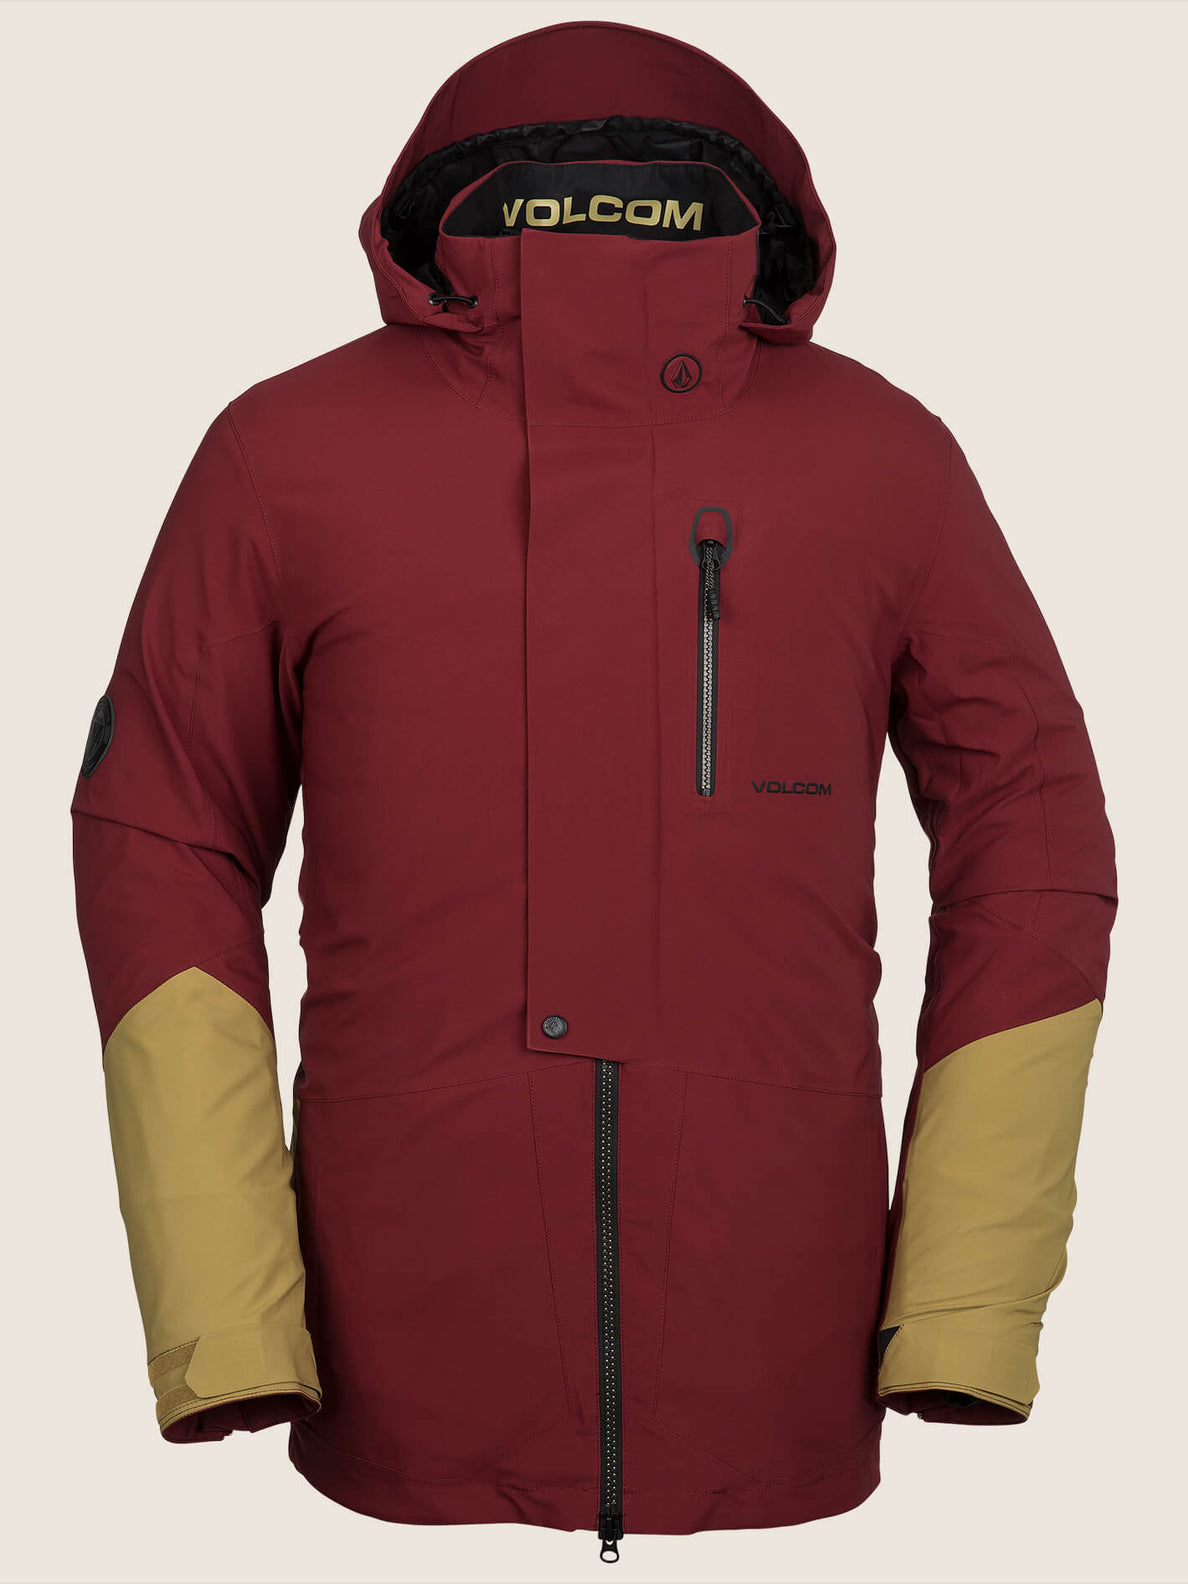 Bl Stretch Gore-tex Jacket In Burnt Red, Front View